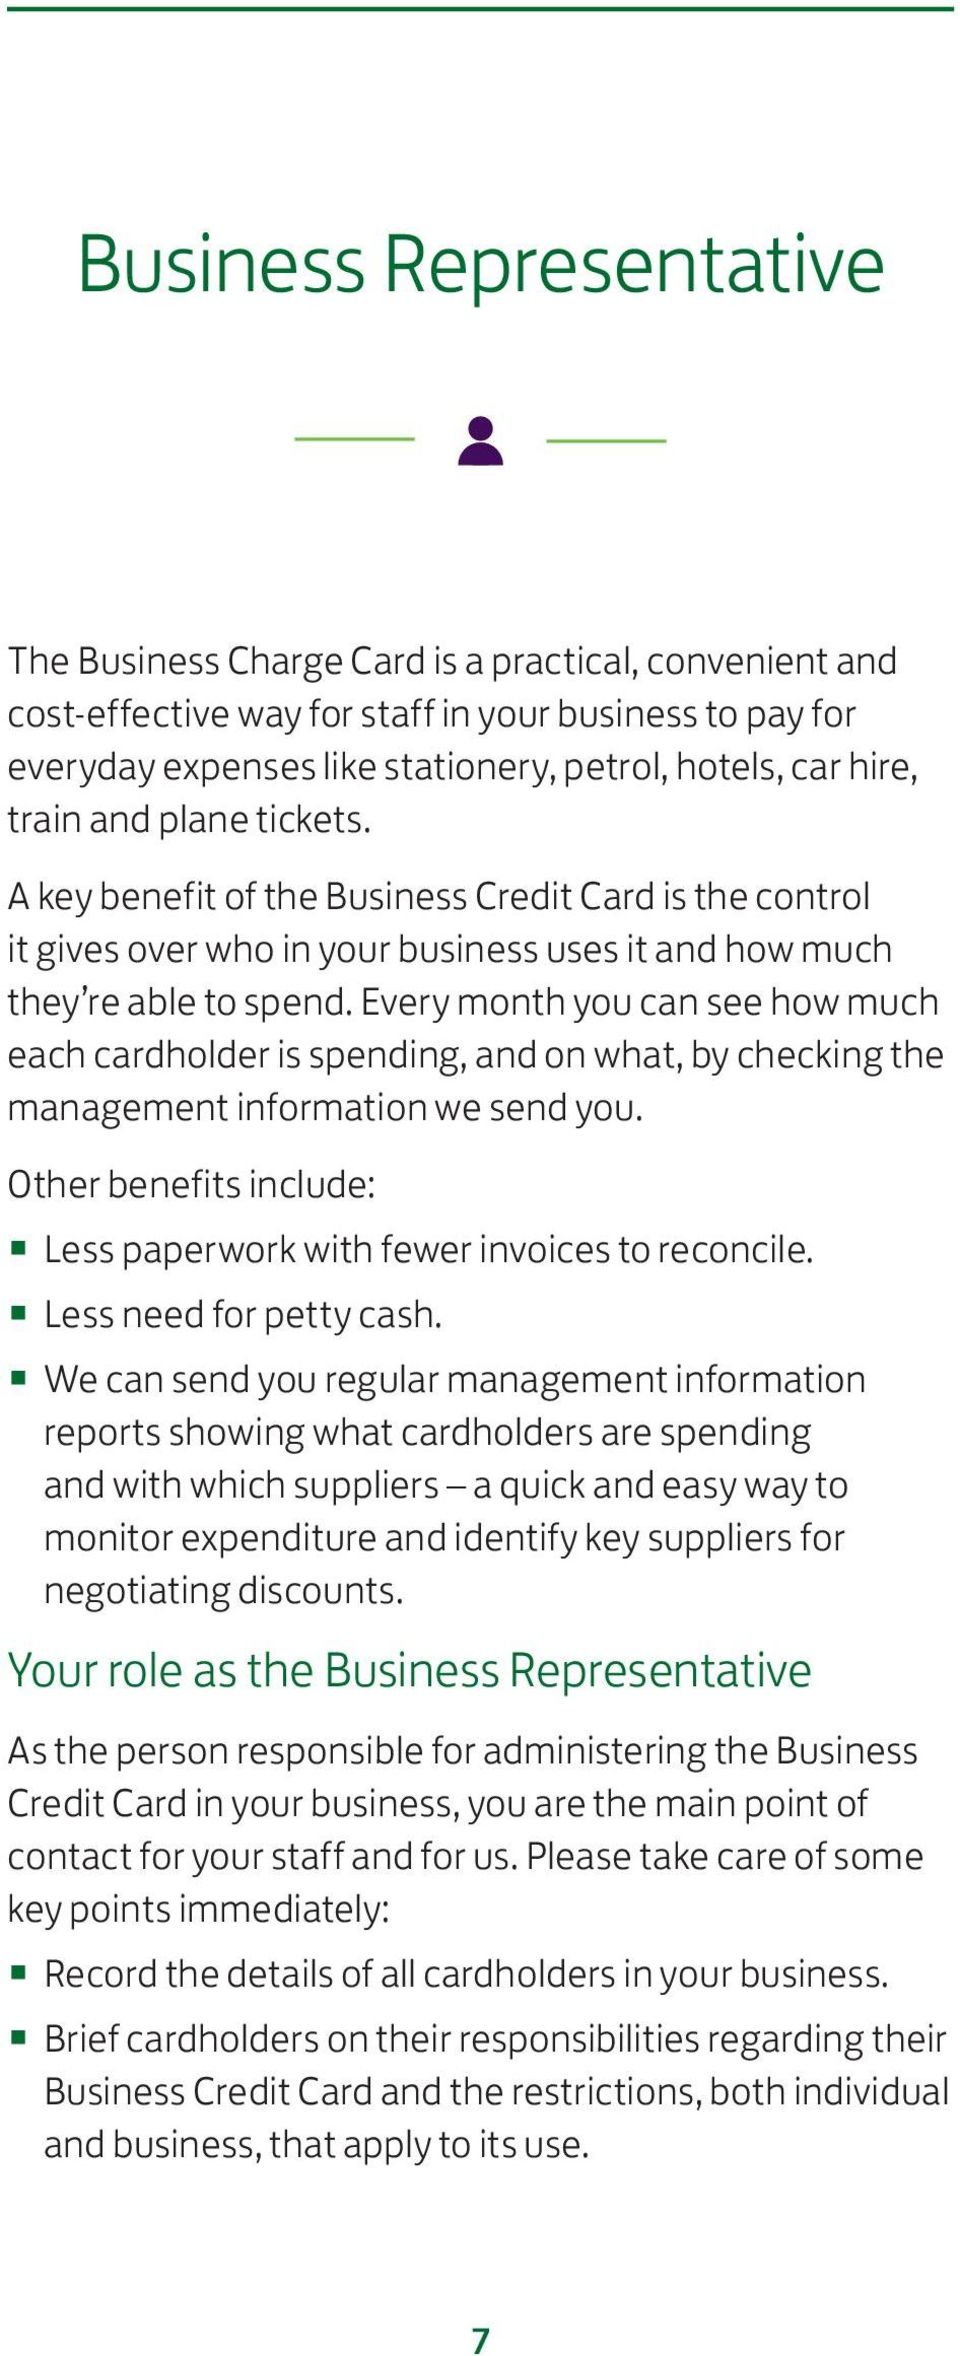 Every month you can see how much each cardholder is spending, and on what, by checking the management information we send you. Other benefits include: Less paperwork with fewer invoices to reconcile.